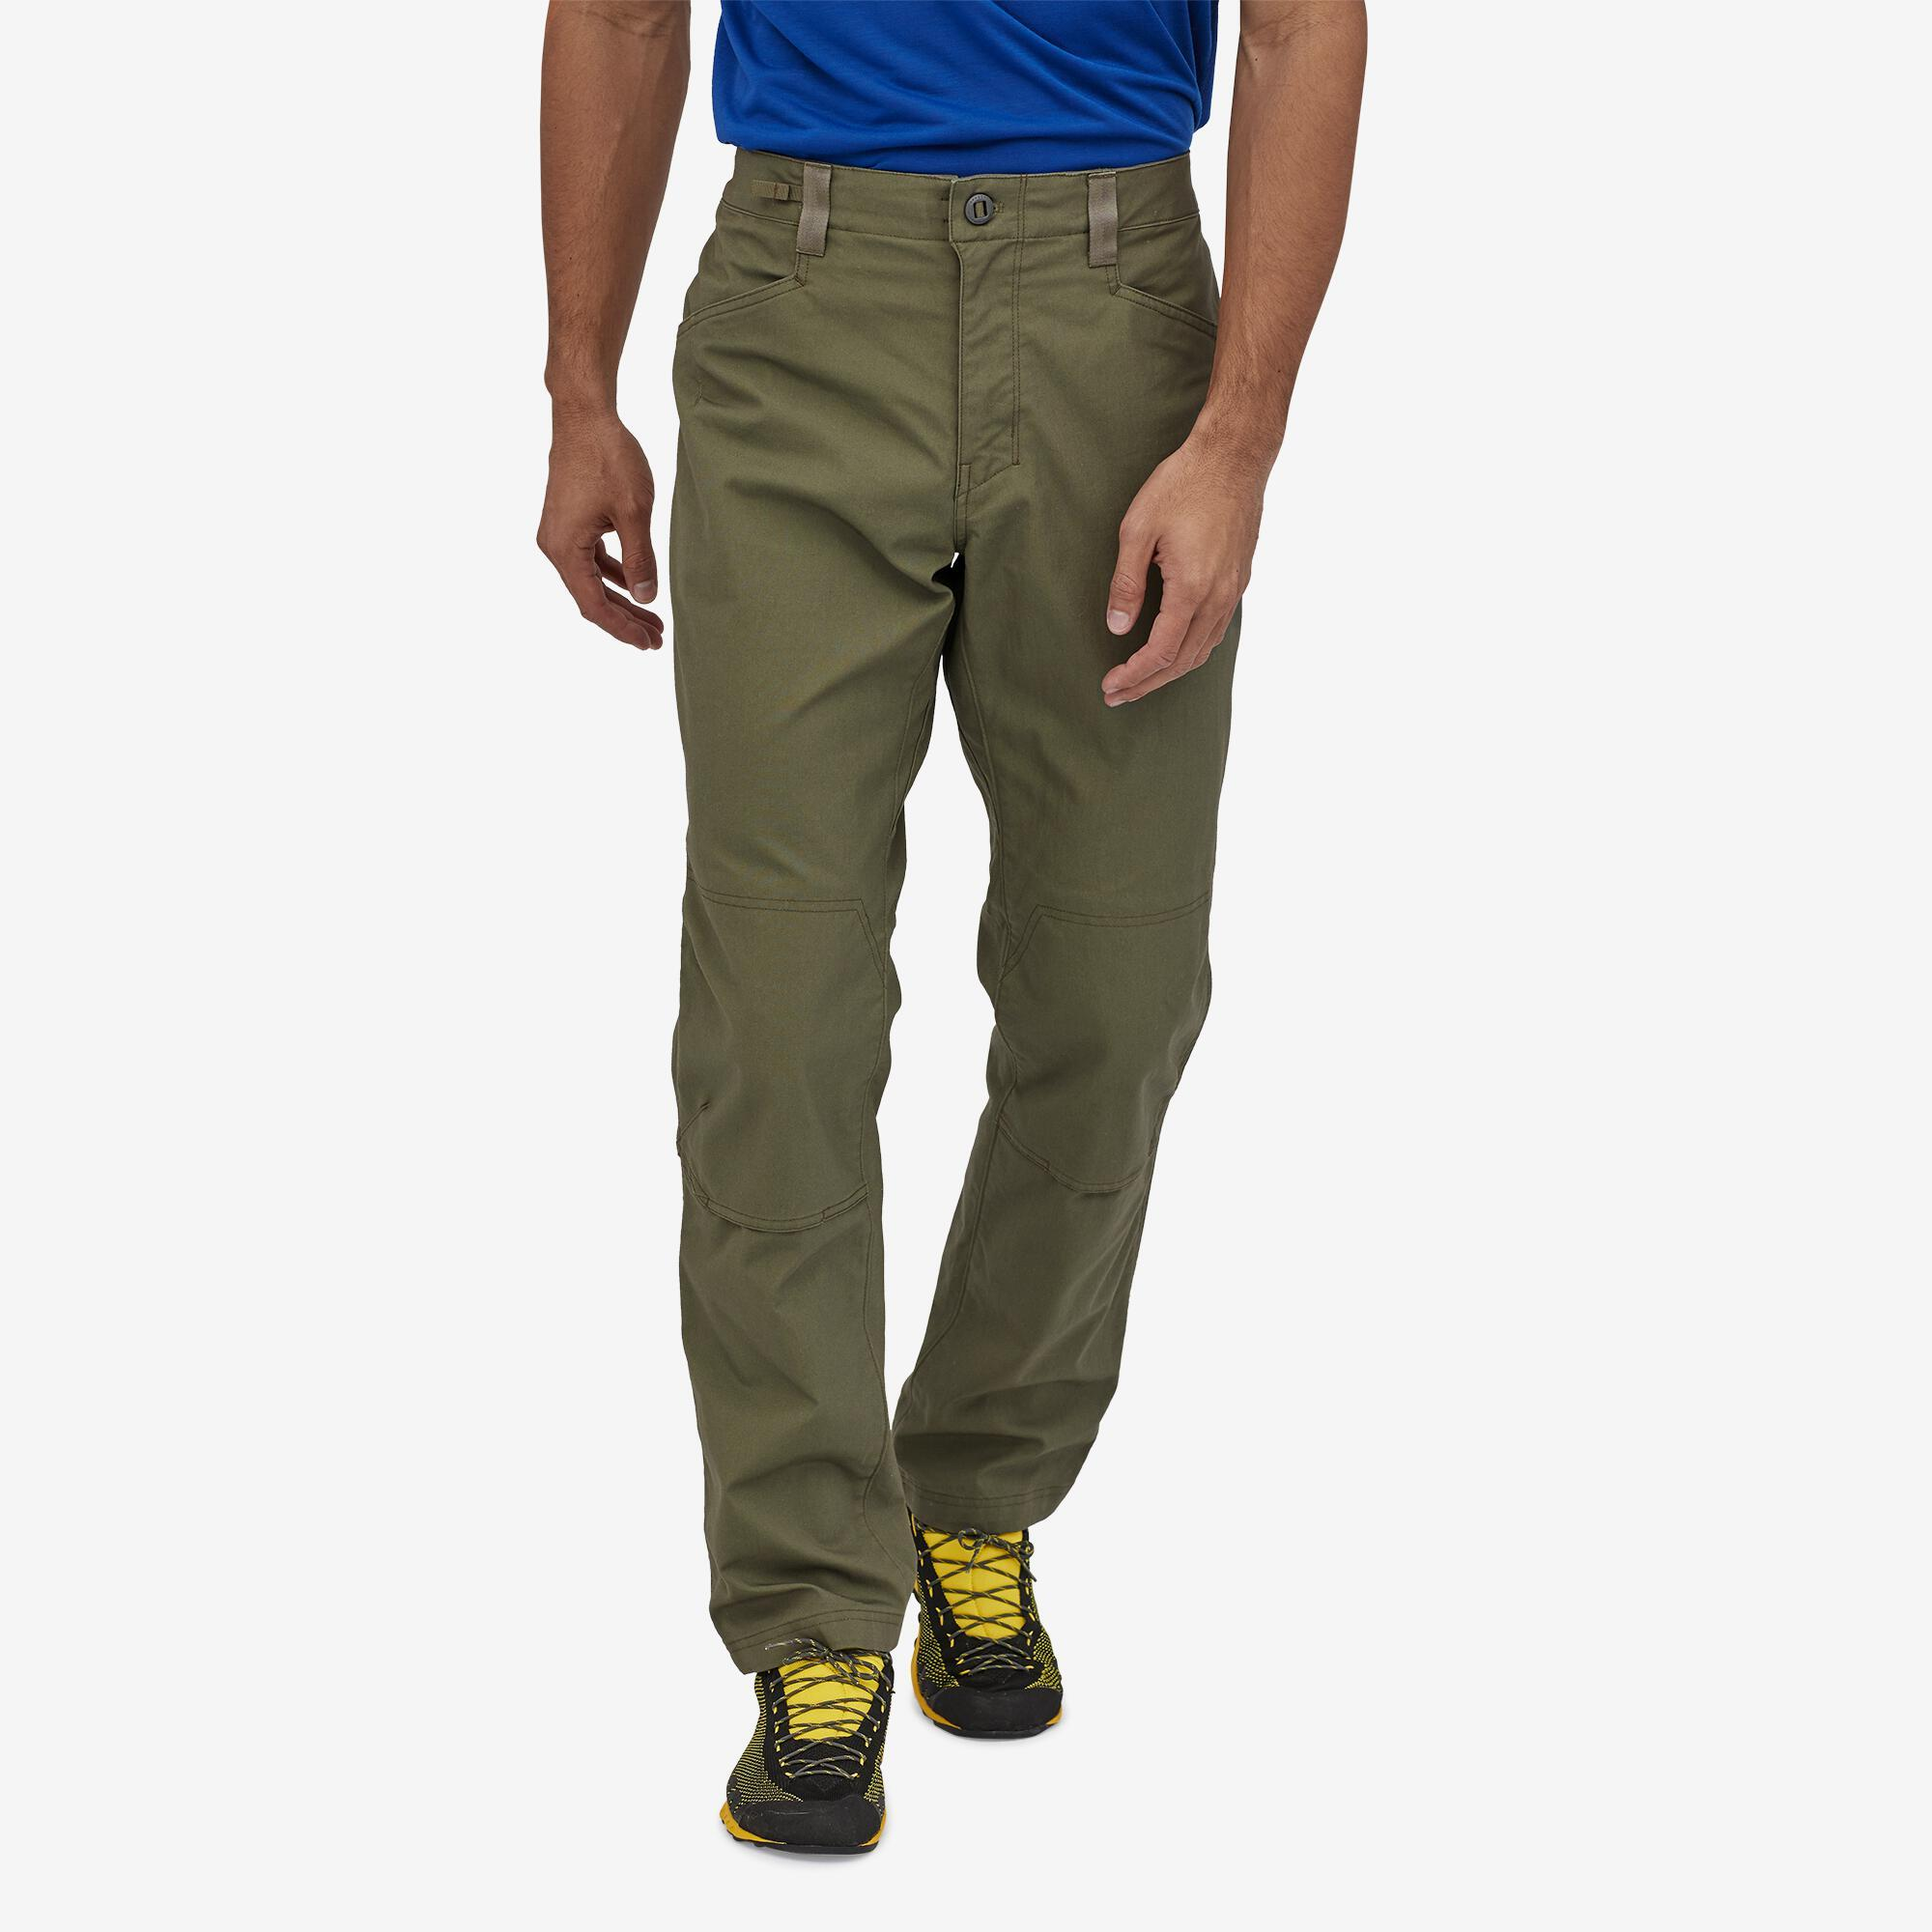 Patagonia - M's Gritstone Rock Pants - Weekendbee - sustainable sportswear